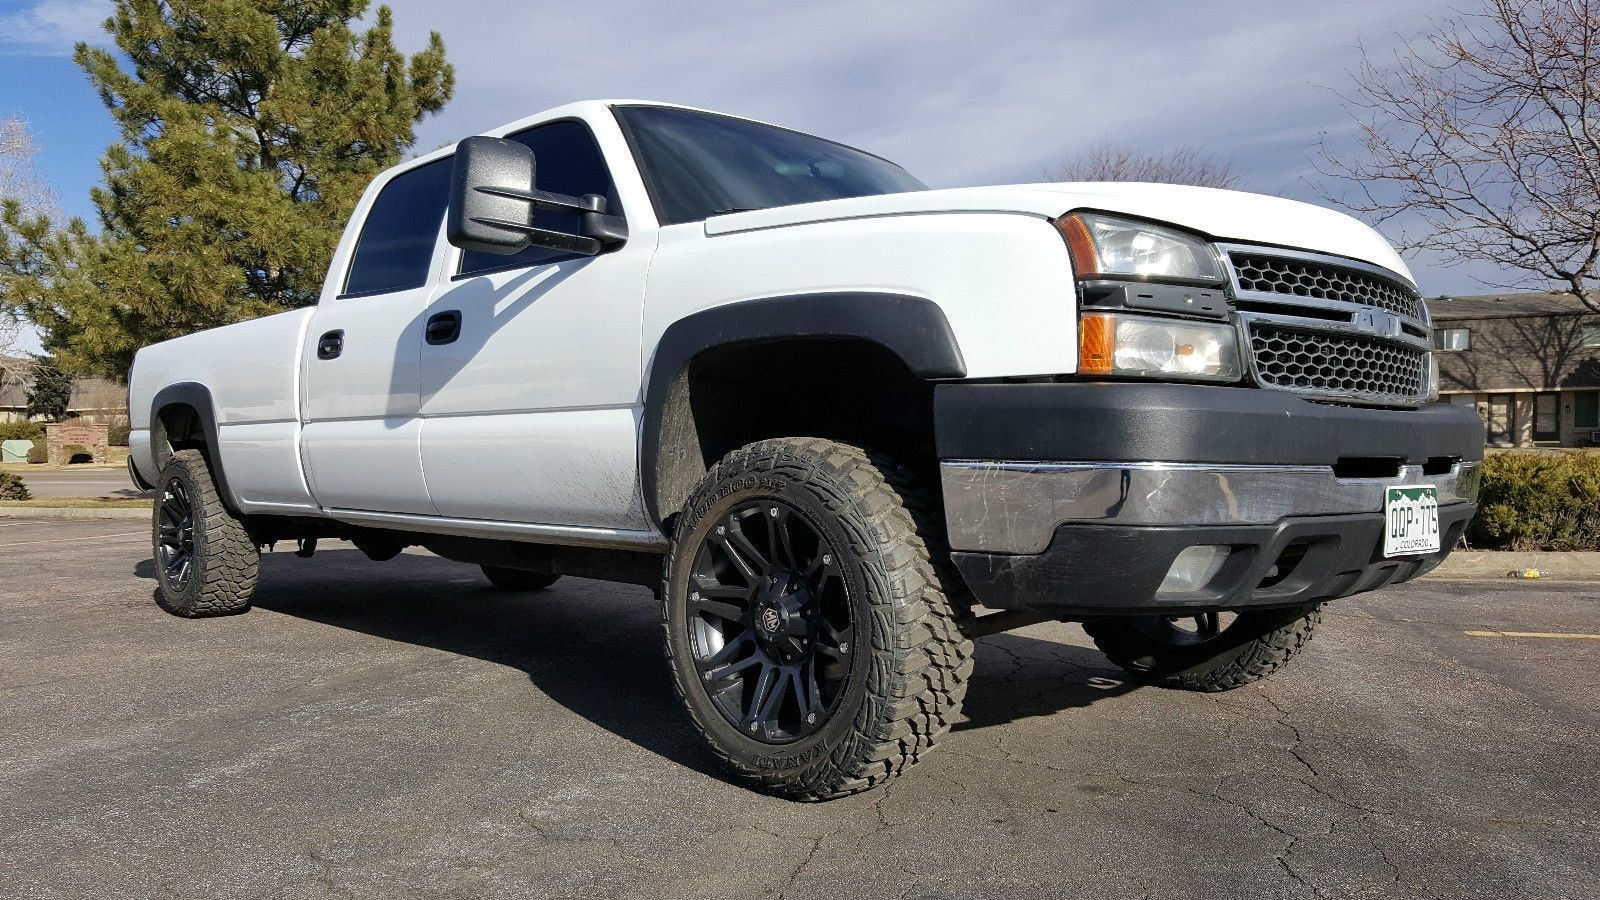 All Chevy 2006 chevy 2500hd towing capacity : 2006 Chevy Silverado 2500hd 6.0 Auto Crew Cab Longbed 4×4 Lift Kit ...